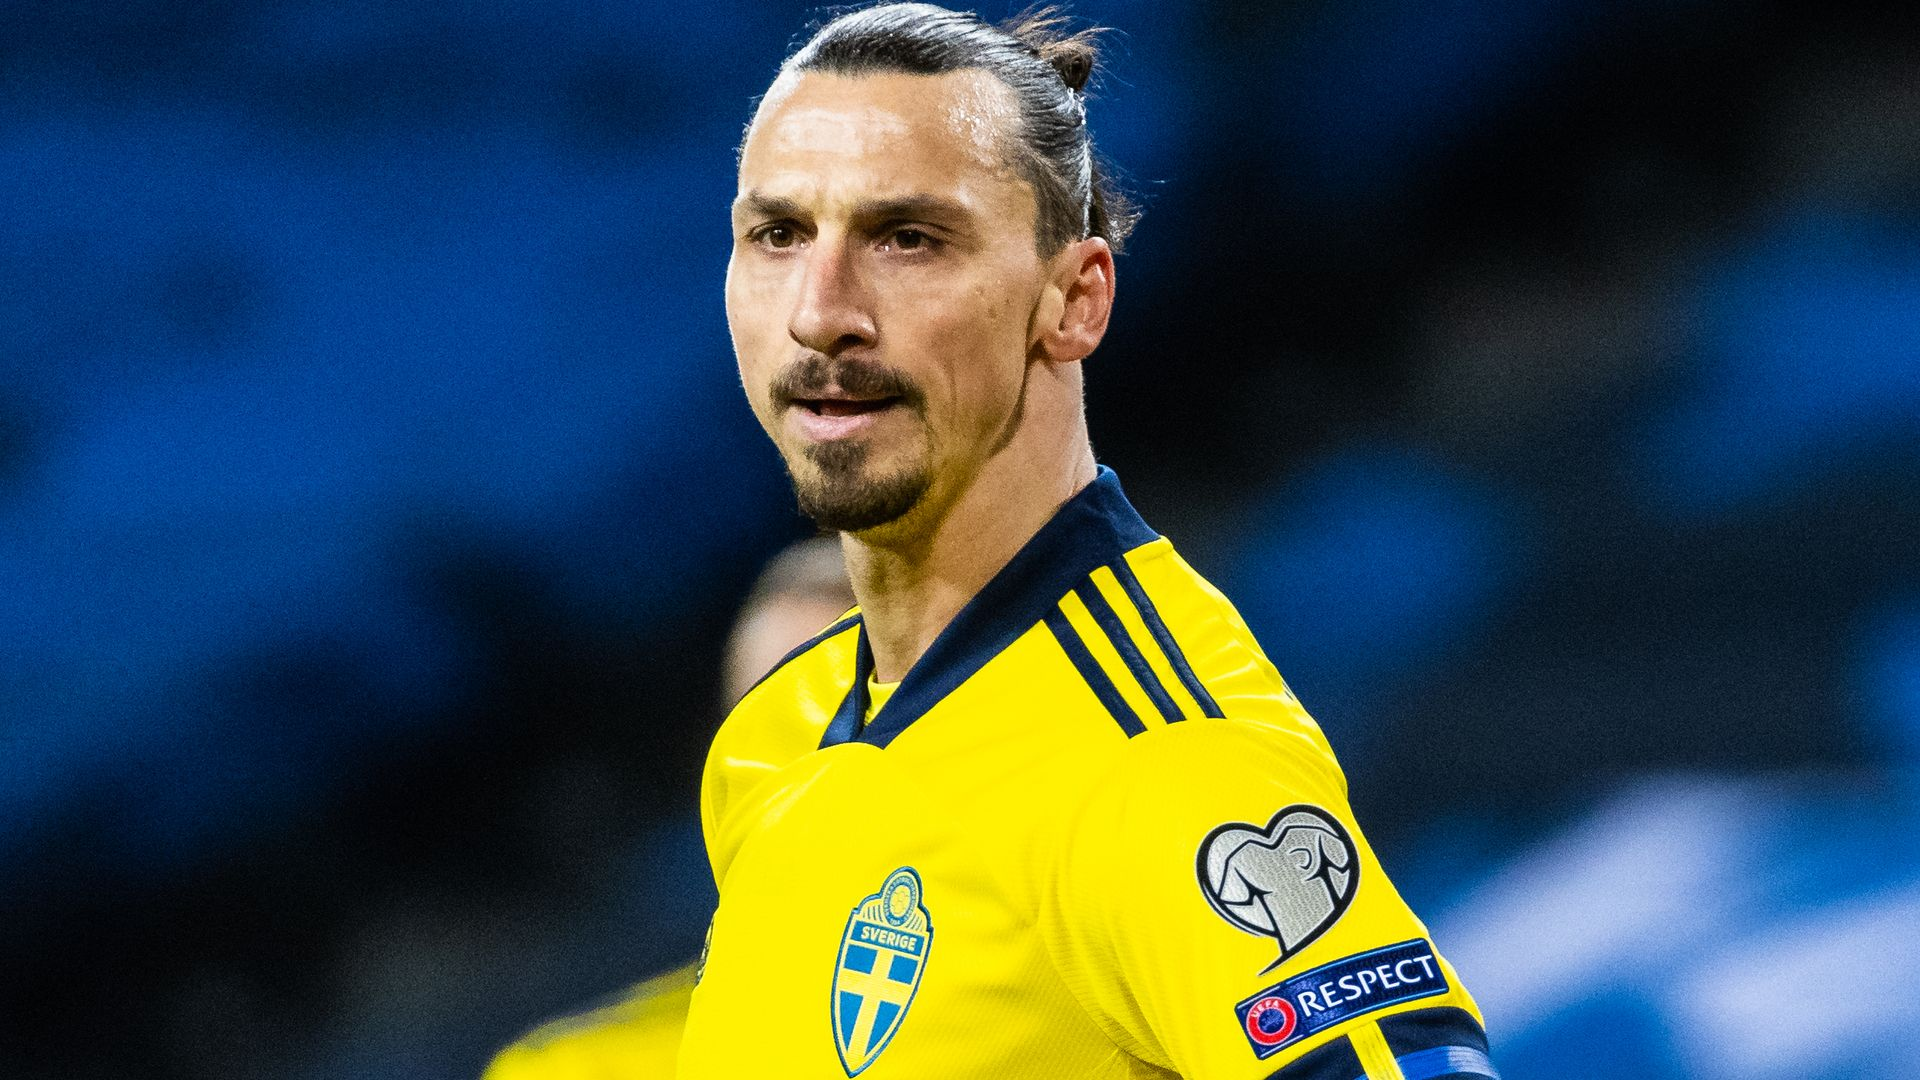 Ibrahimovic ruled out of Euros with knee injury